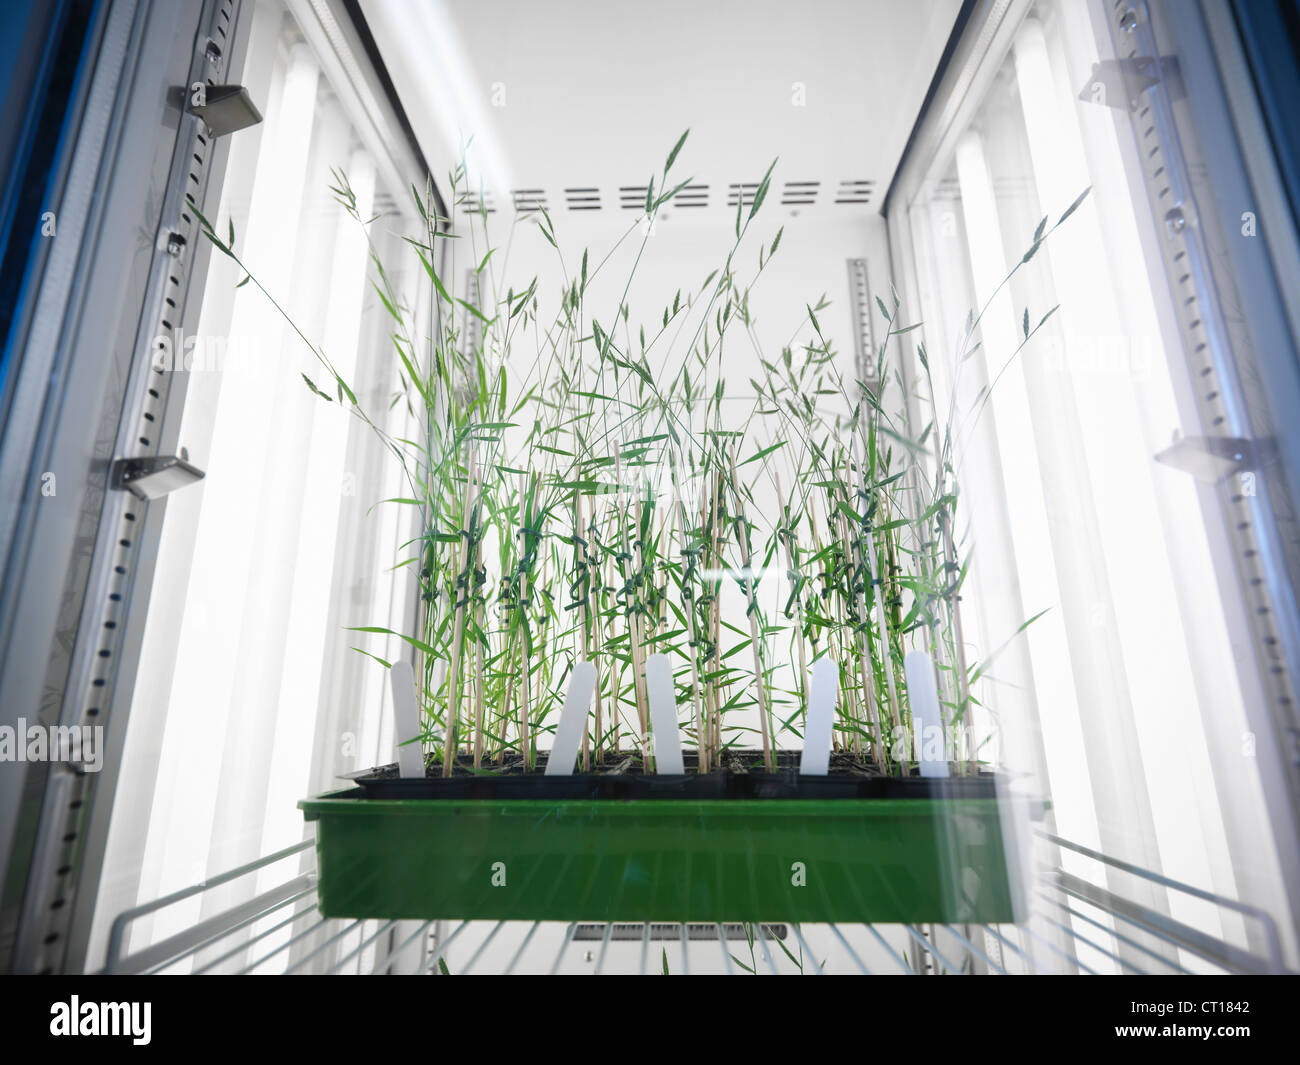 Plants growing in lab fridge - Stock Image